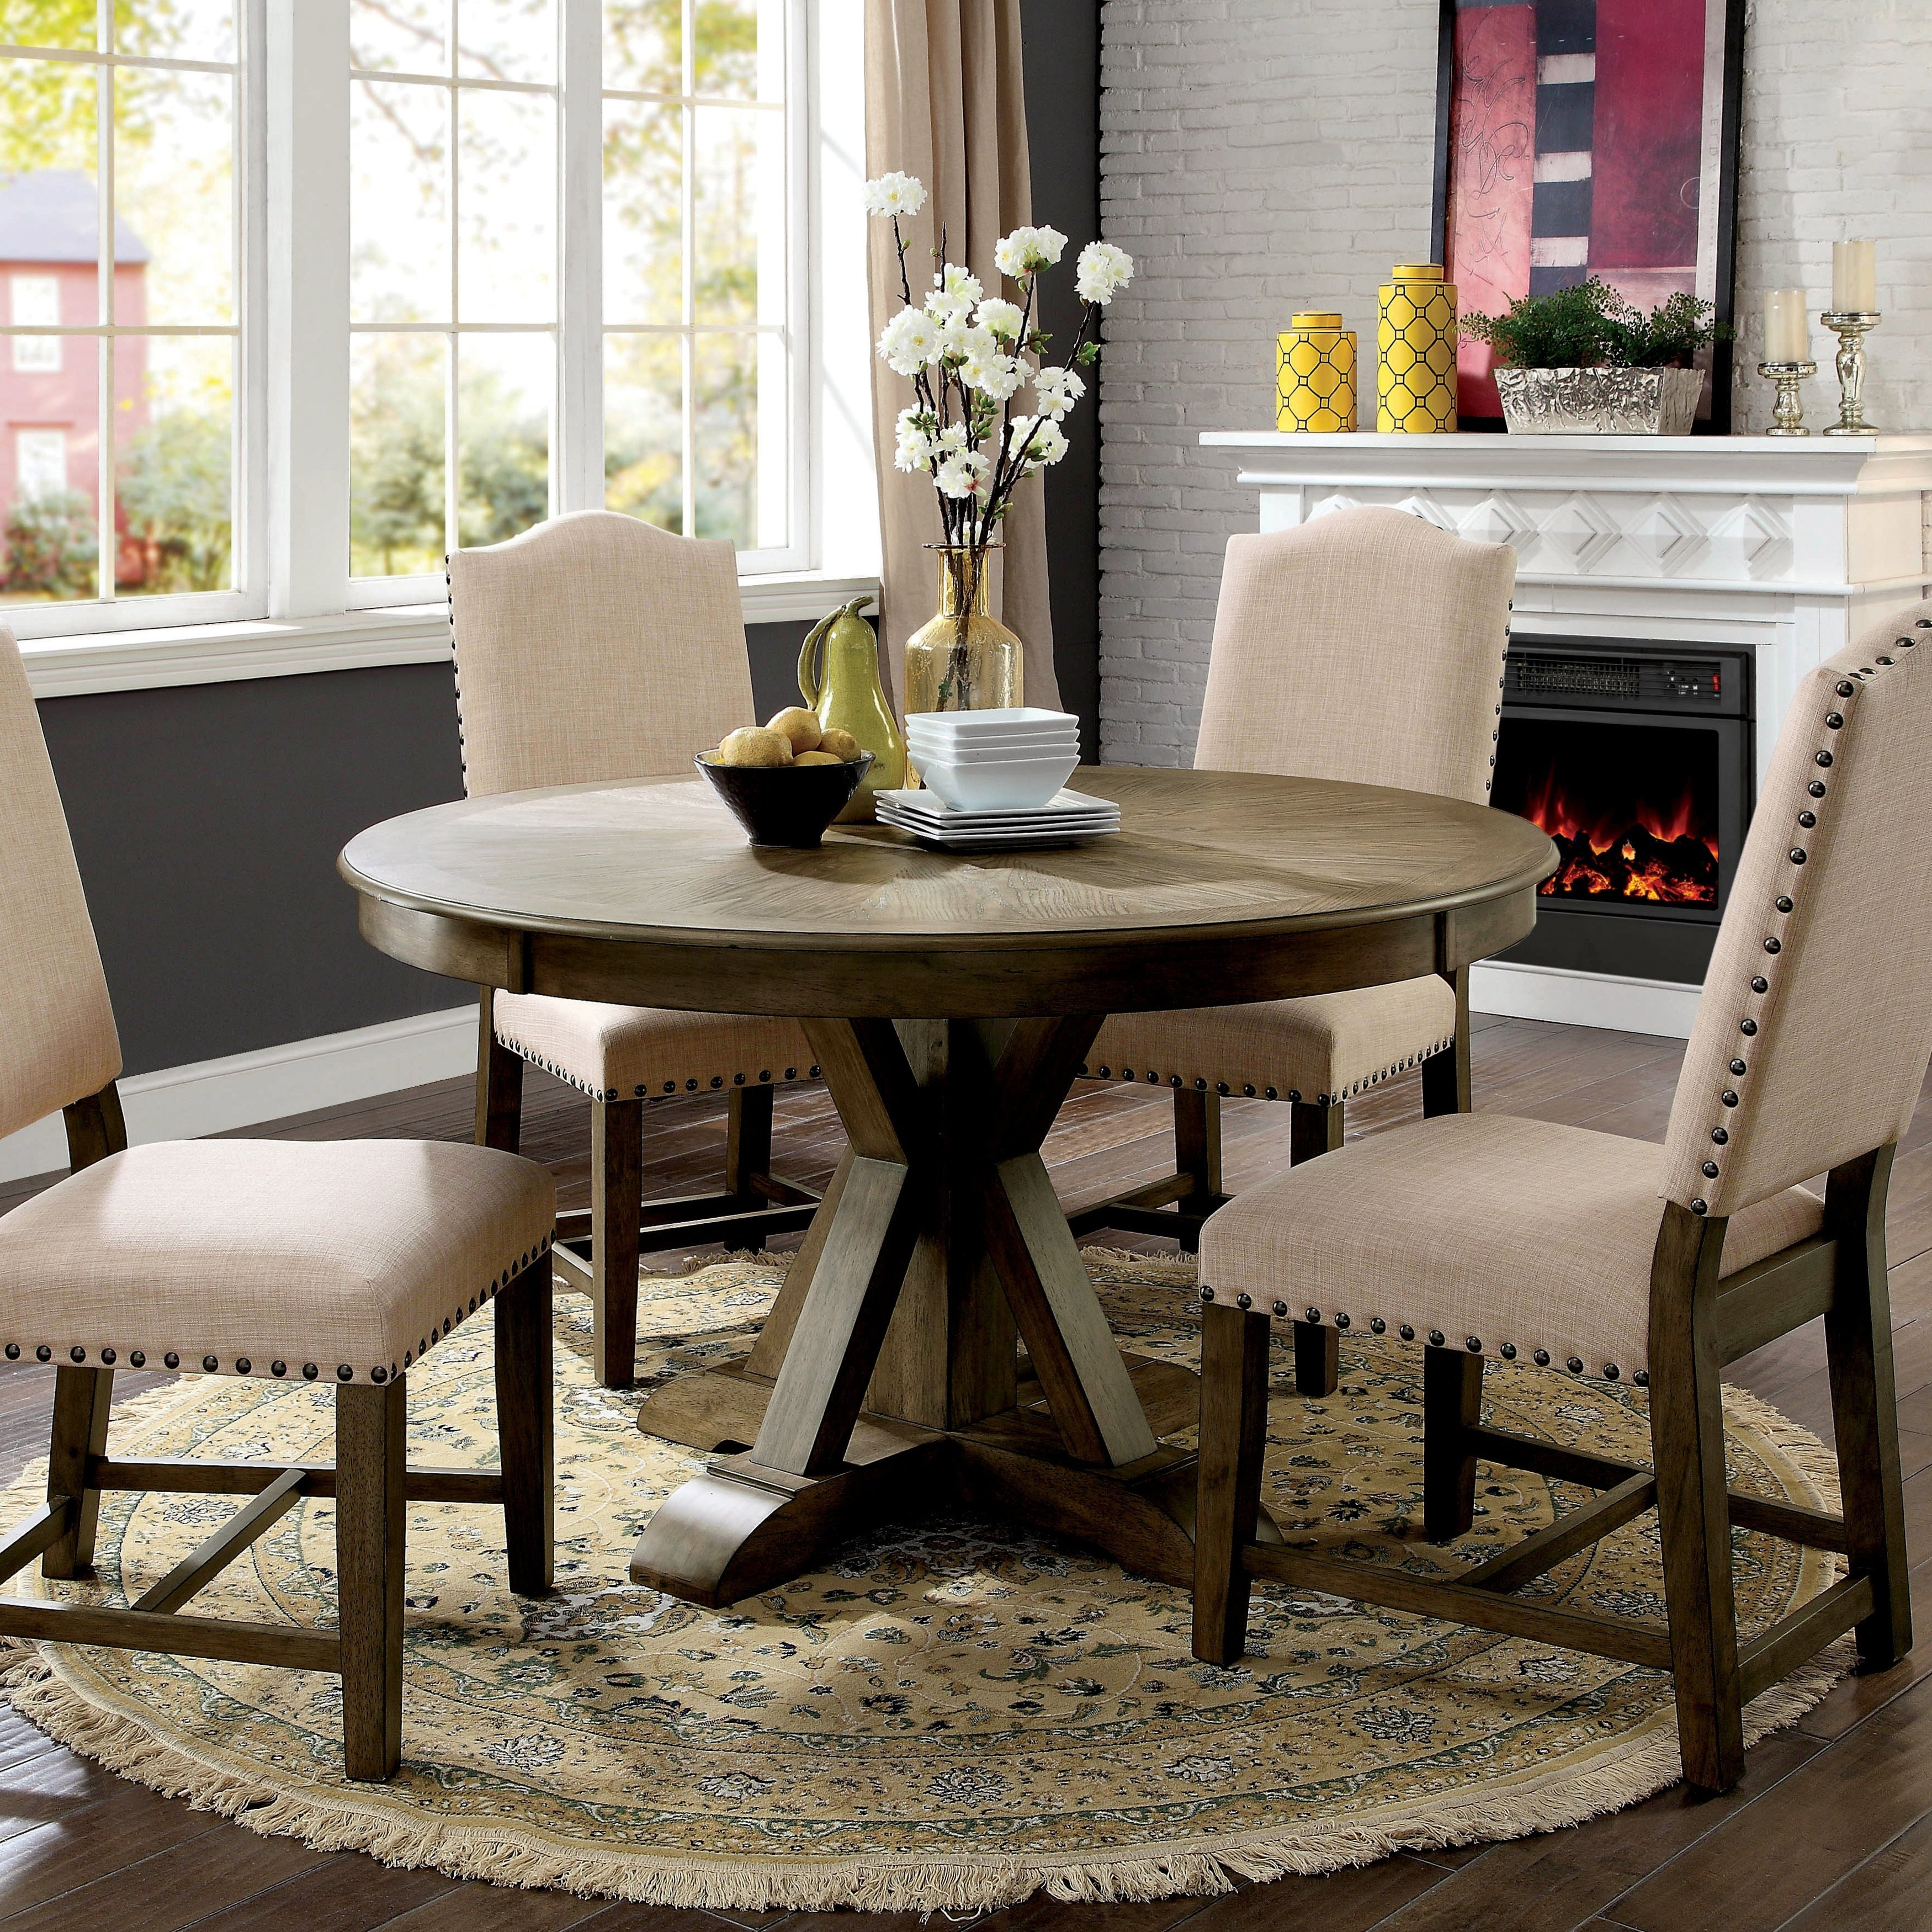 Cooper Dining Tables Pertaining To 2018 Shop Furniture Of America Cooper Rustic Light Oak Round 54 Inch (View 10 of 25)